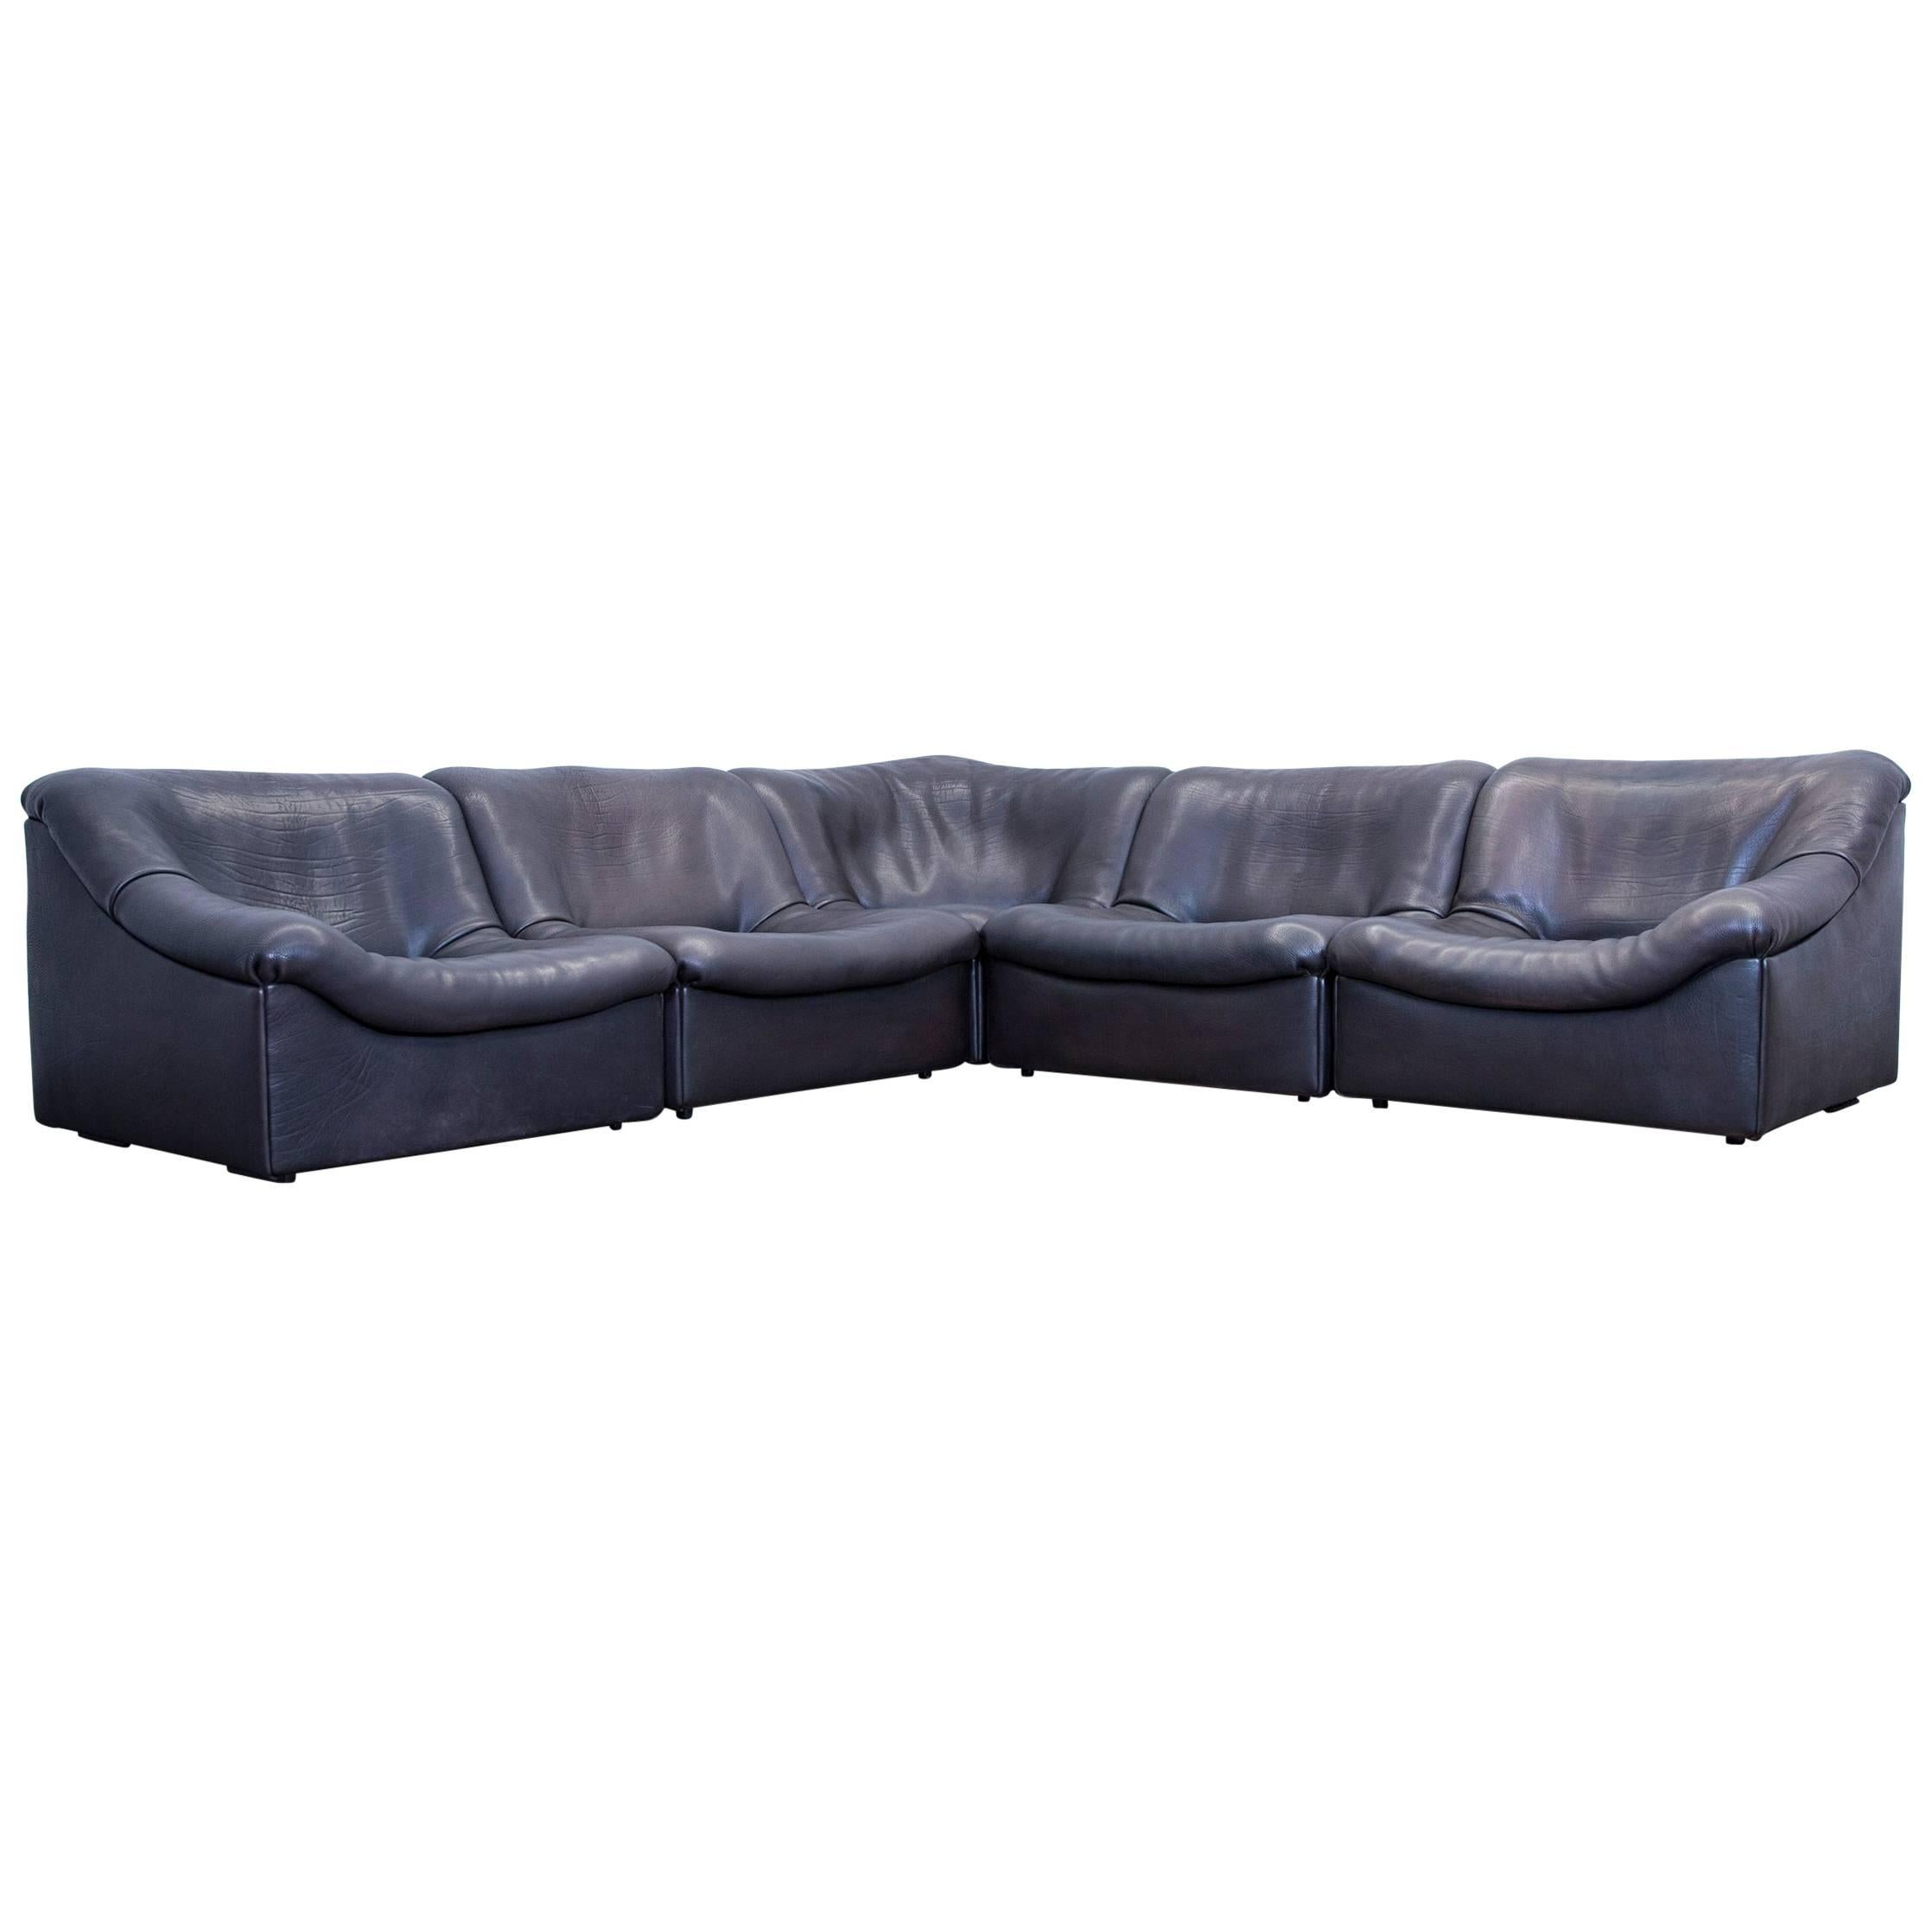 De Sede DS 46 Buff Leather Corner Sofa Brown Black Modular Function Couch  Modern